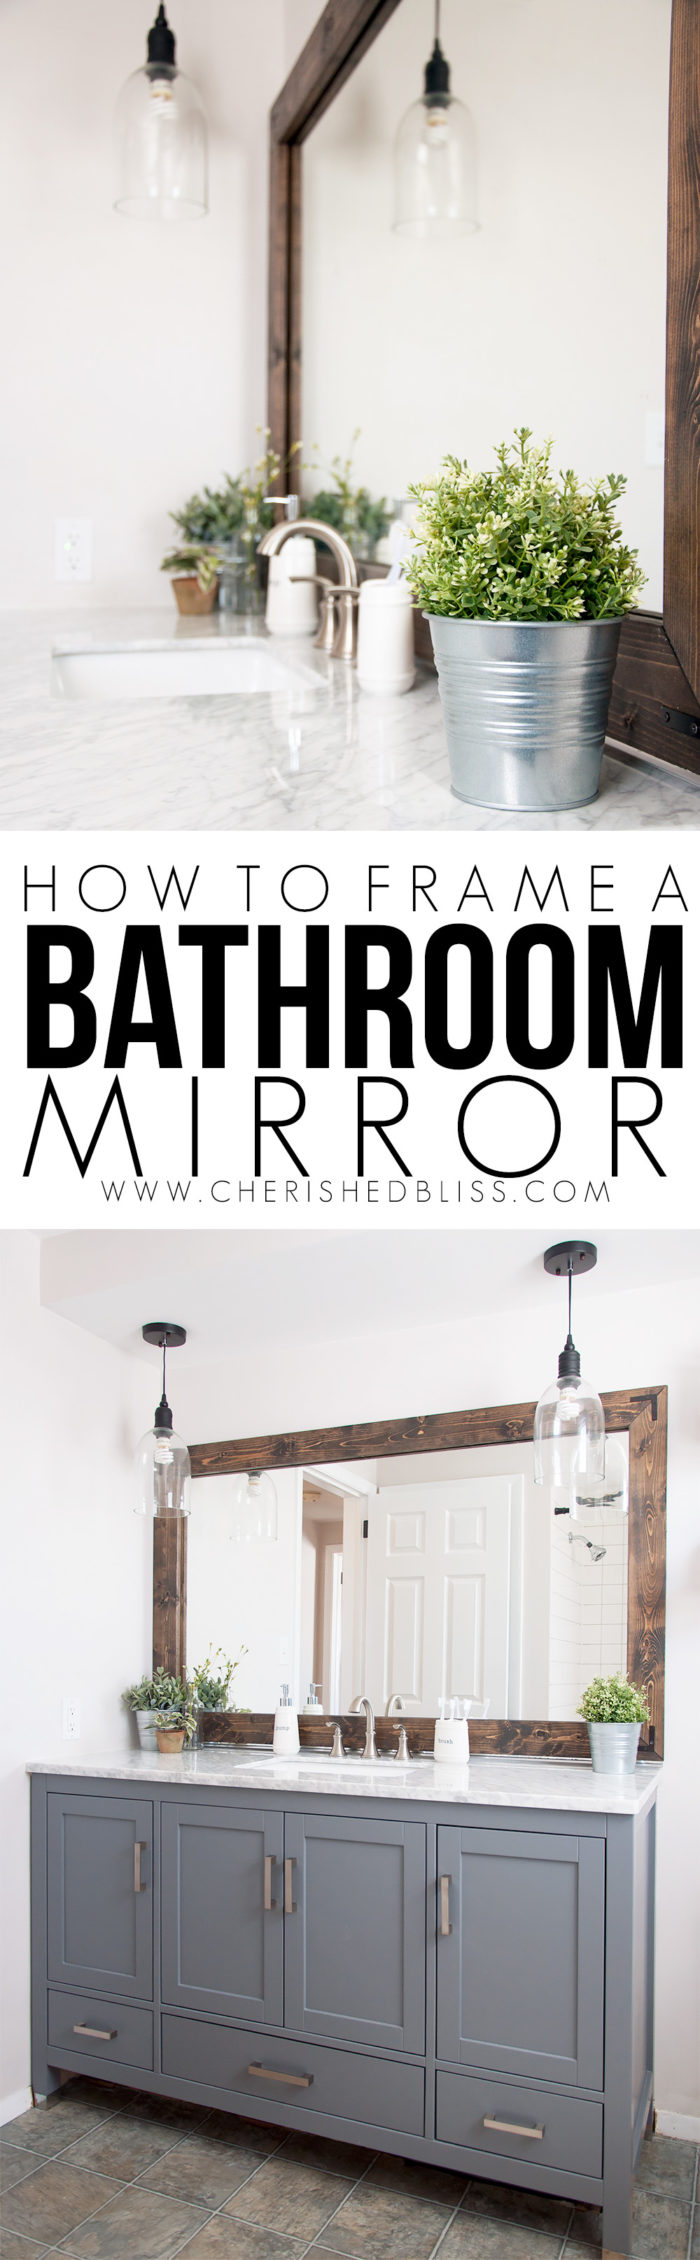 How To Frame A Bathroom Mirror 700×2260